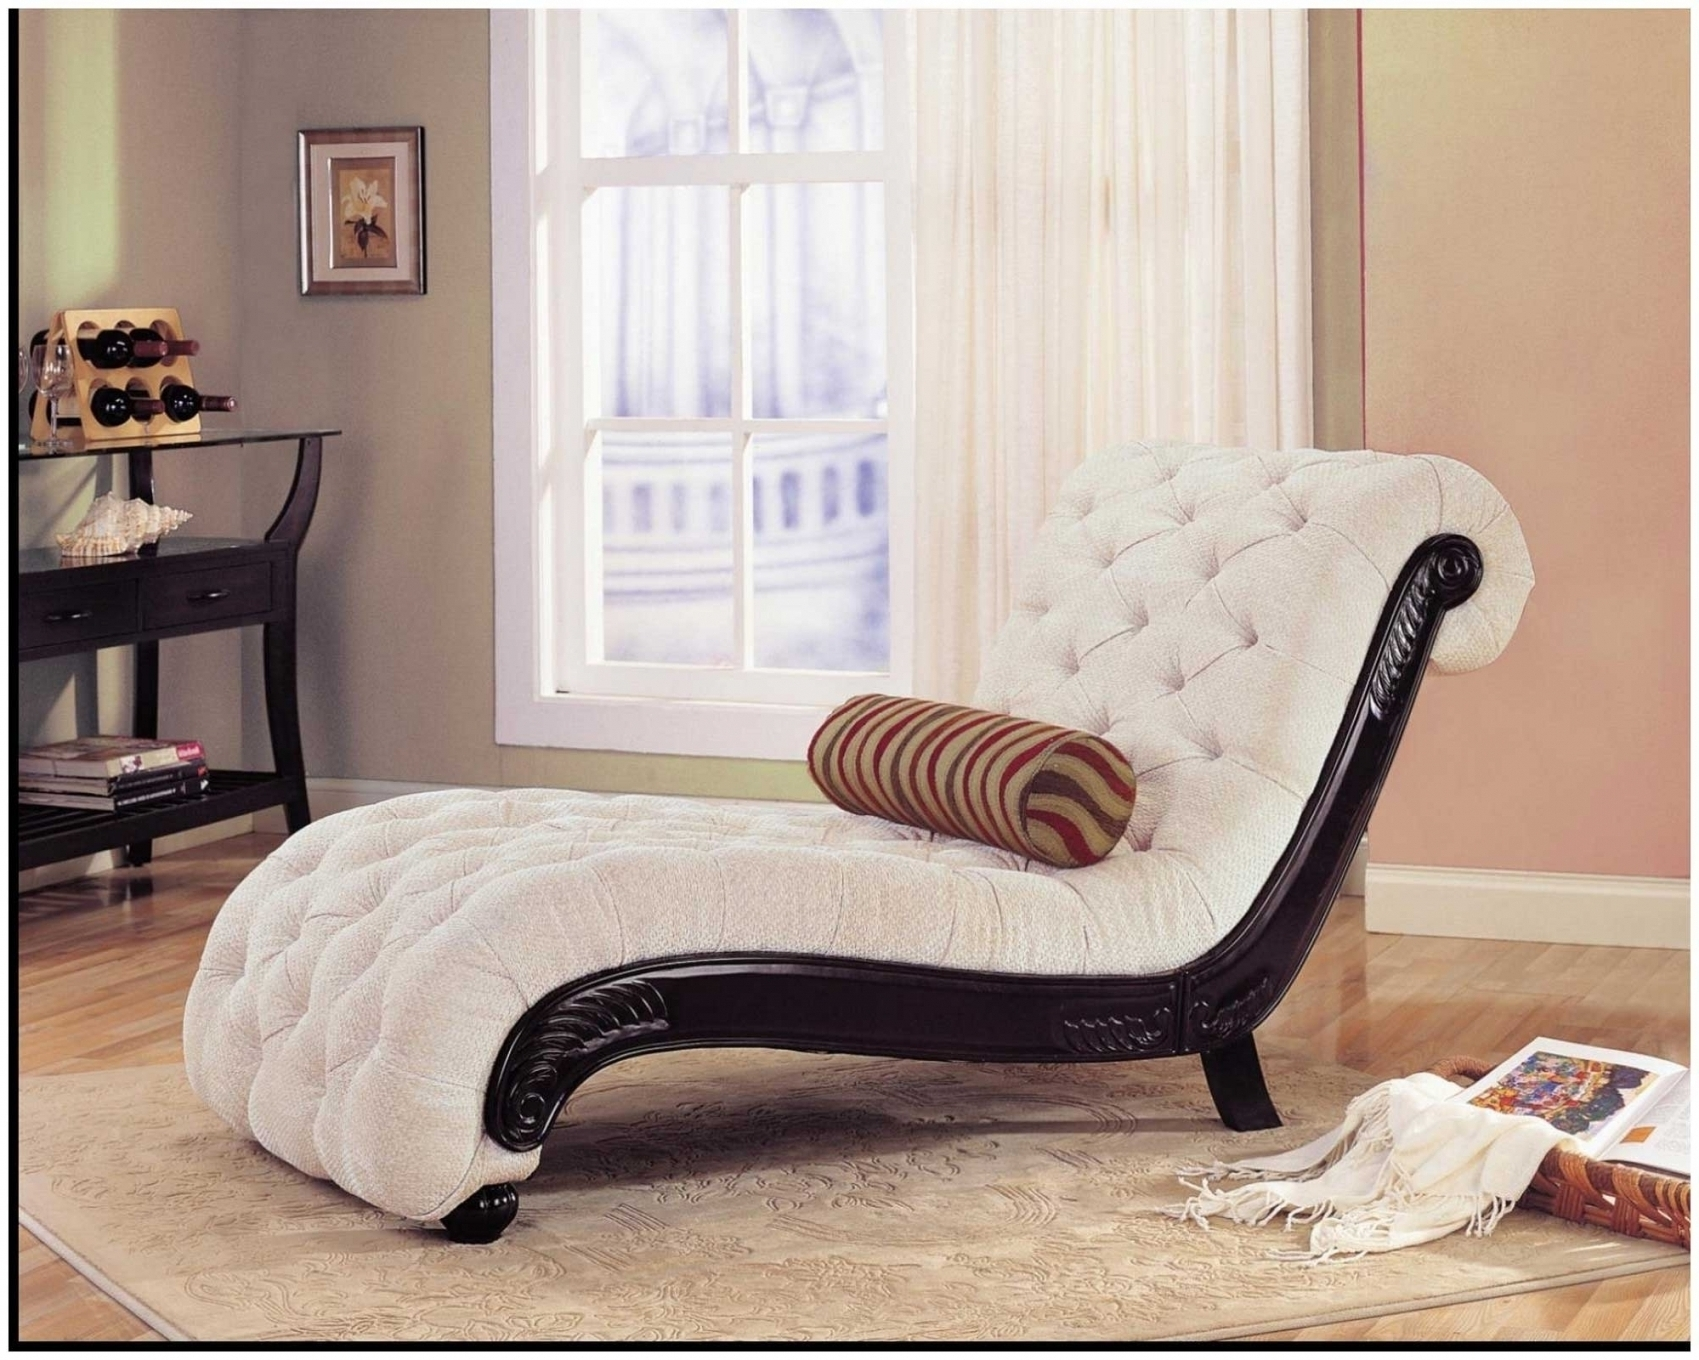 Popular Bedroom Chairs Indoor Chaise Lounge Chairs White Colour Indoor For Intended For Luxury Chaise Lounge Chairs (View 6 of 15)